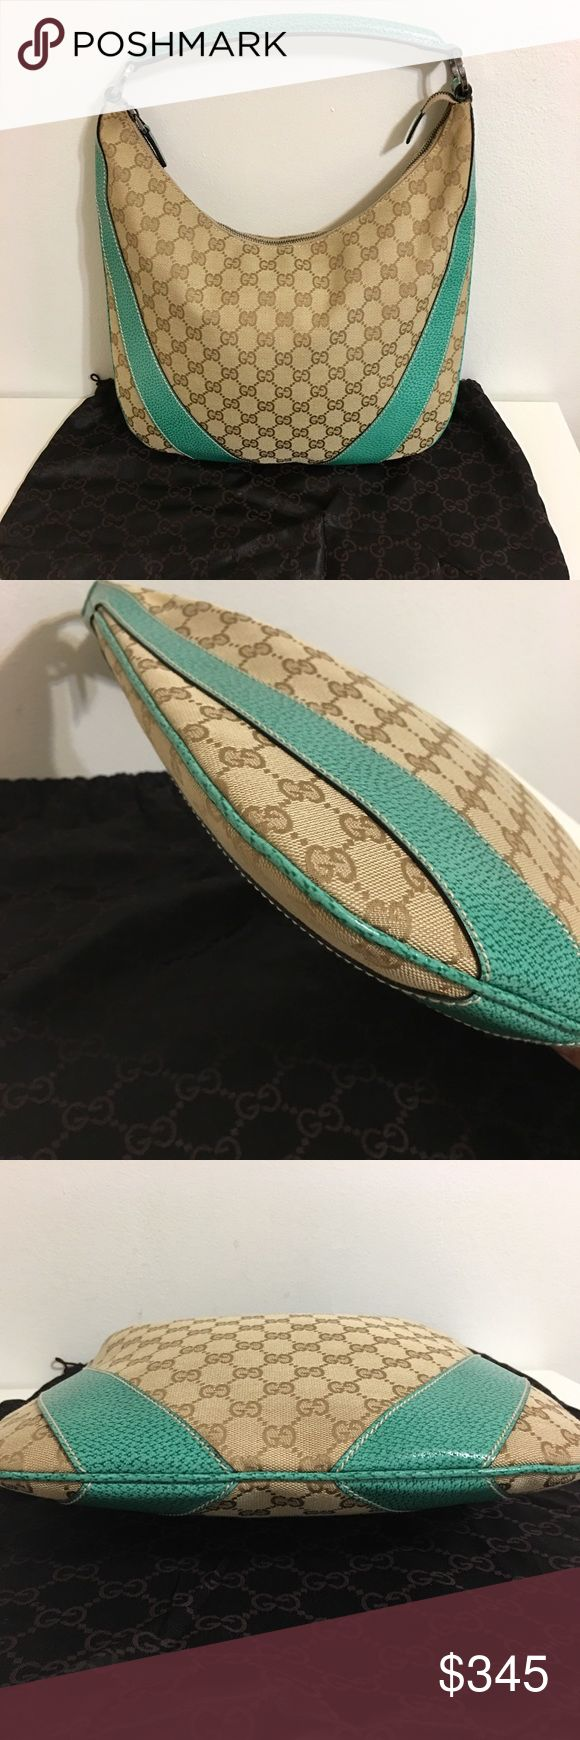 Authentic GUCCI bag Authentic GUCCI hobo bag. Made in Italy. Classic Gucci canvas with silver hardware and turquoise leather. Canvas, bottom, stitching, and handles in great condition. Inside unique turquoise lining with one pocket, clean as well. Serial # shown on the picture. Very good condition! Zipper works well. Smoke free home. Dimensions are: 13L across x 13H x 0.5D. Original dust bag included. Perfect spring/ summer everyday bag! Great condition. Feel free to request different…